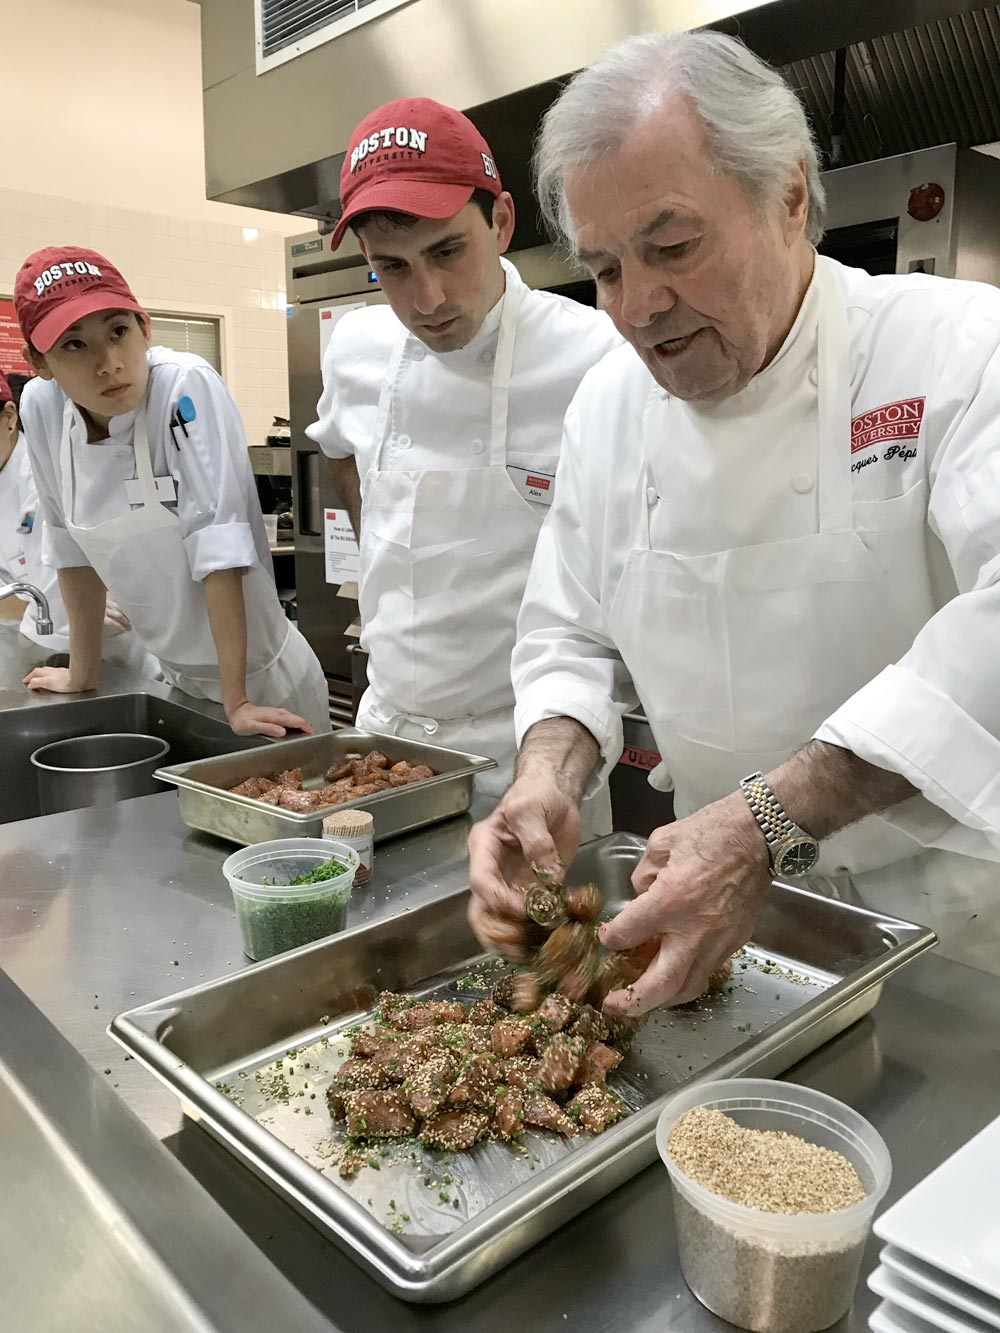 Subscribe to the Jacques Pépin Foundation today